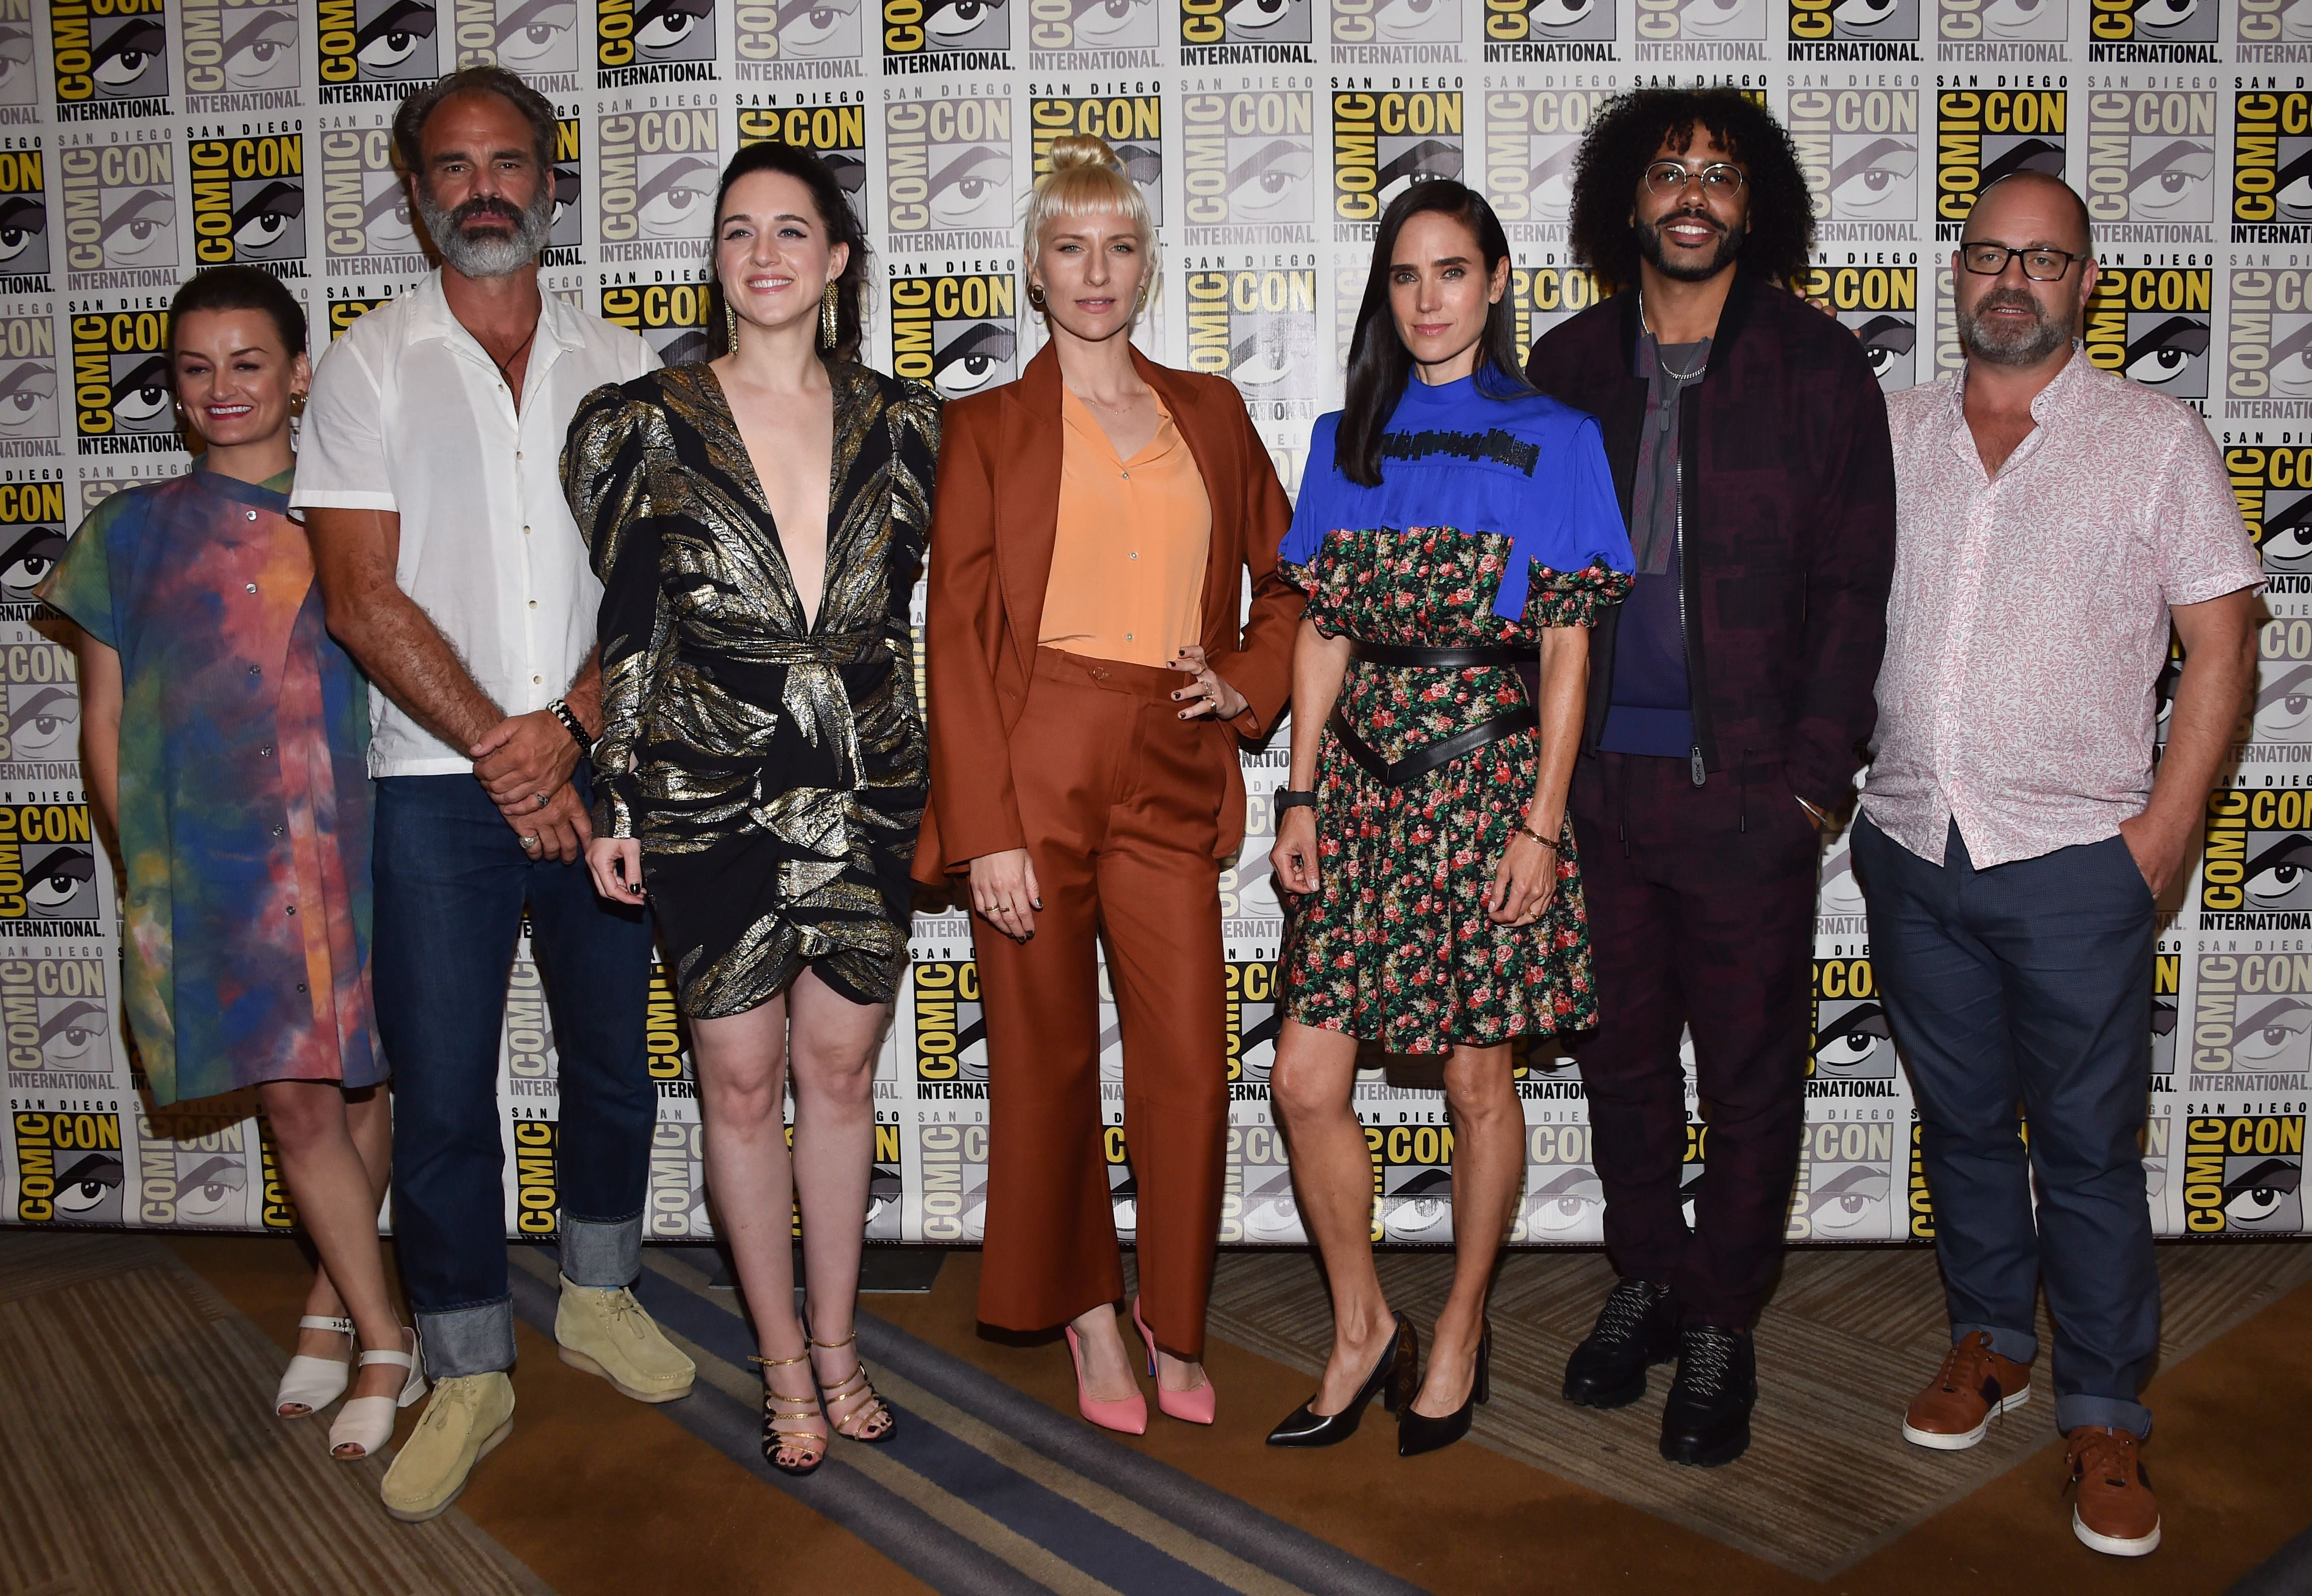 Jennifer Connelly, Graeme Manson, Steven Ogg, Alison Wright, Mickey Sumner, Lena Hall, and Daveed Diggs at an event for Snowpiercer (2020)